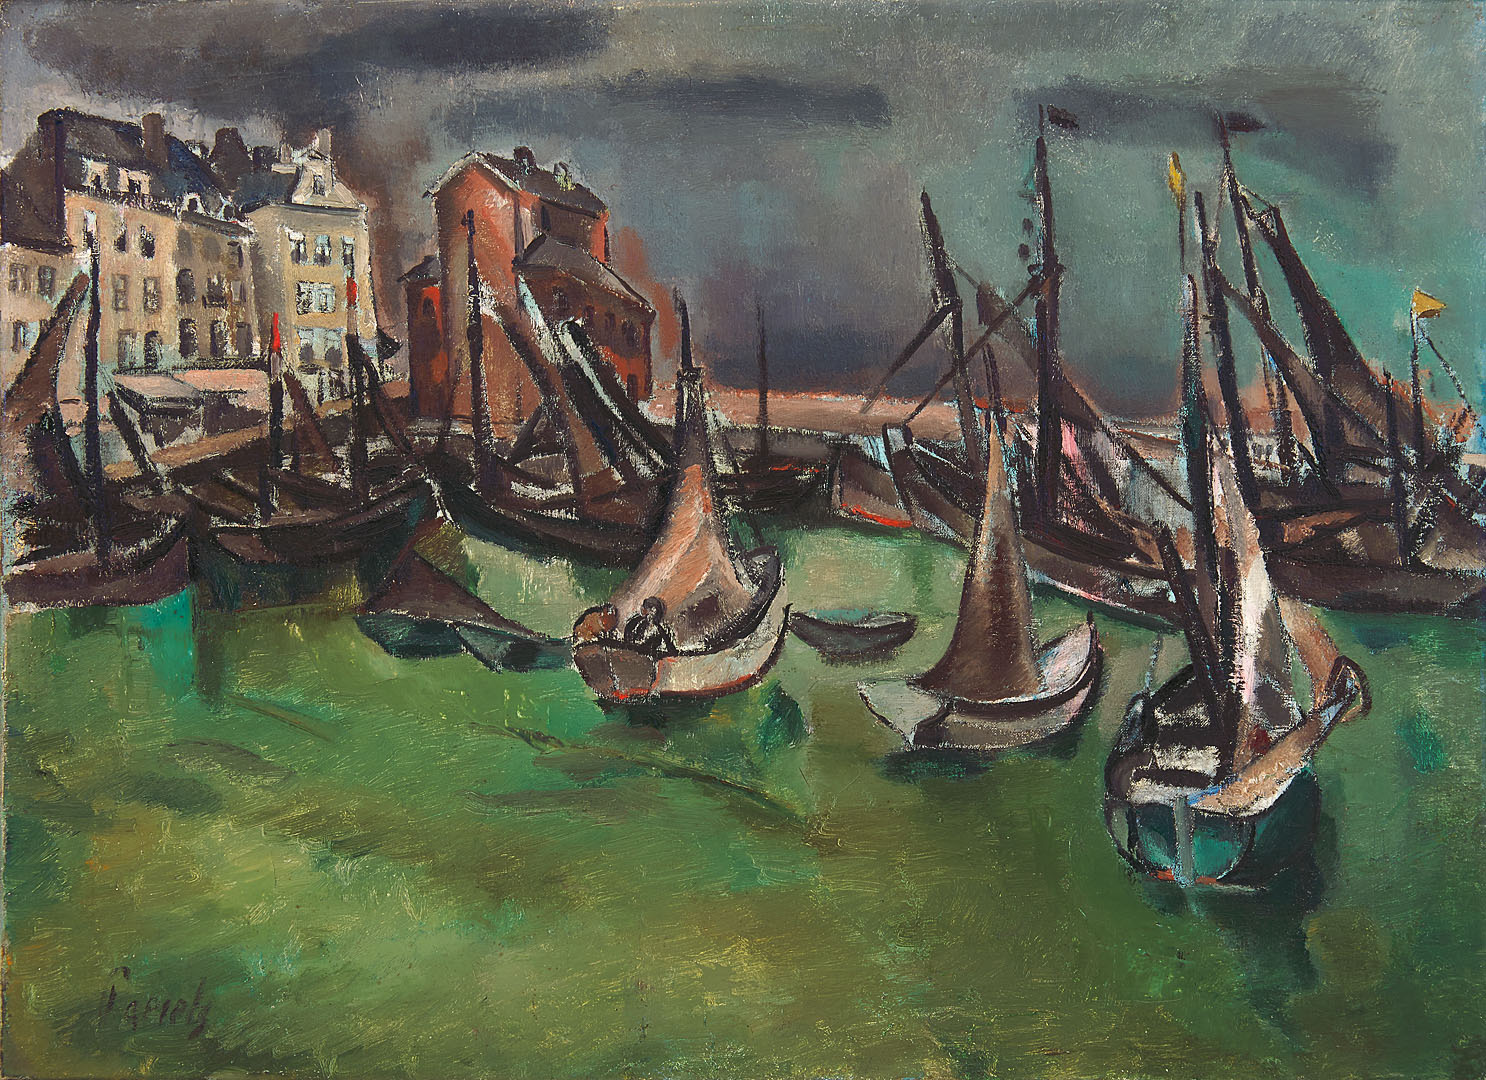 Boten in een haven Willem Adriaan Paerels (1878-1962) - Kunsthandel Studio 2000